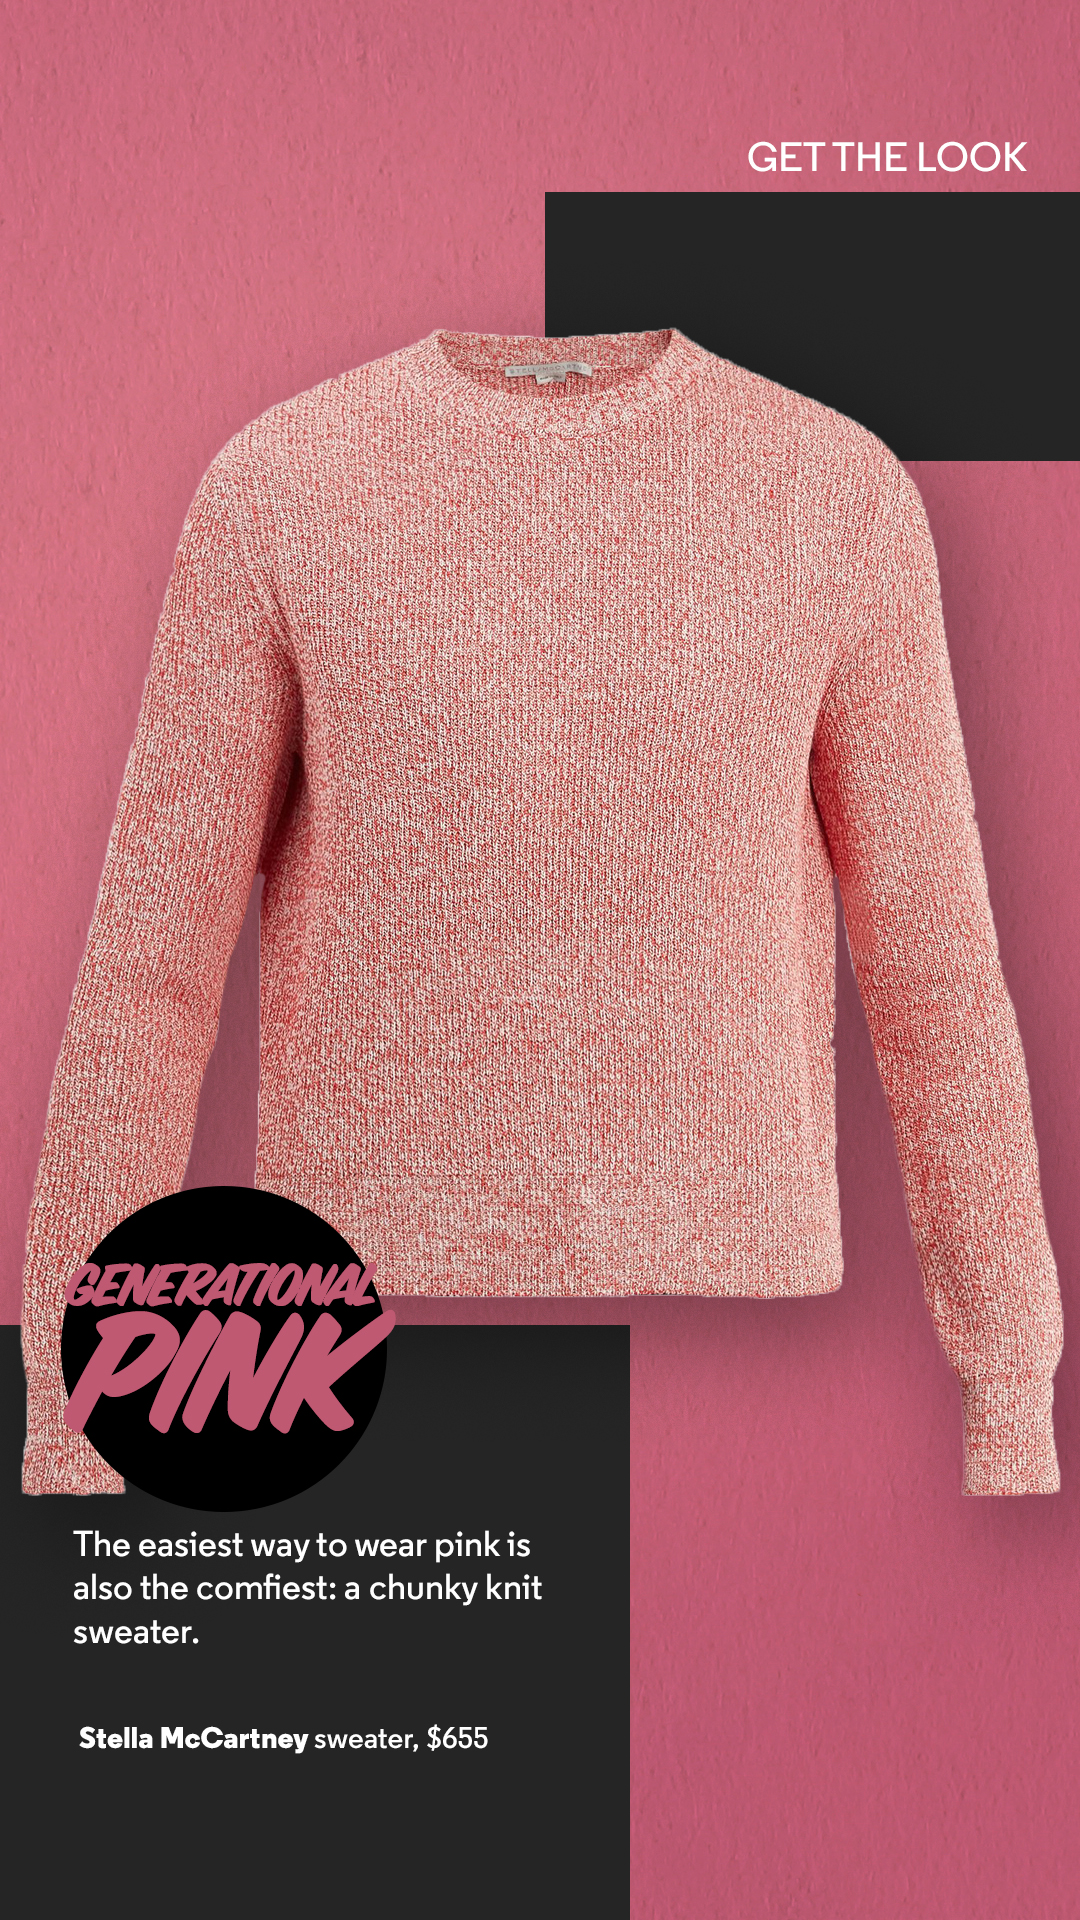 Stella McCartney Sweater.jpg